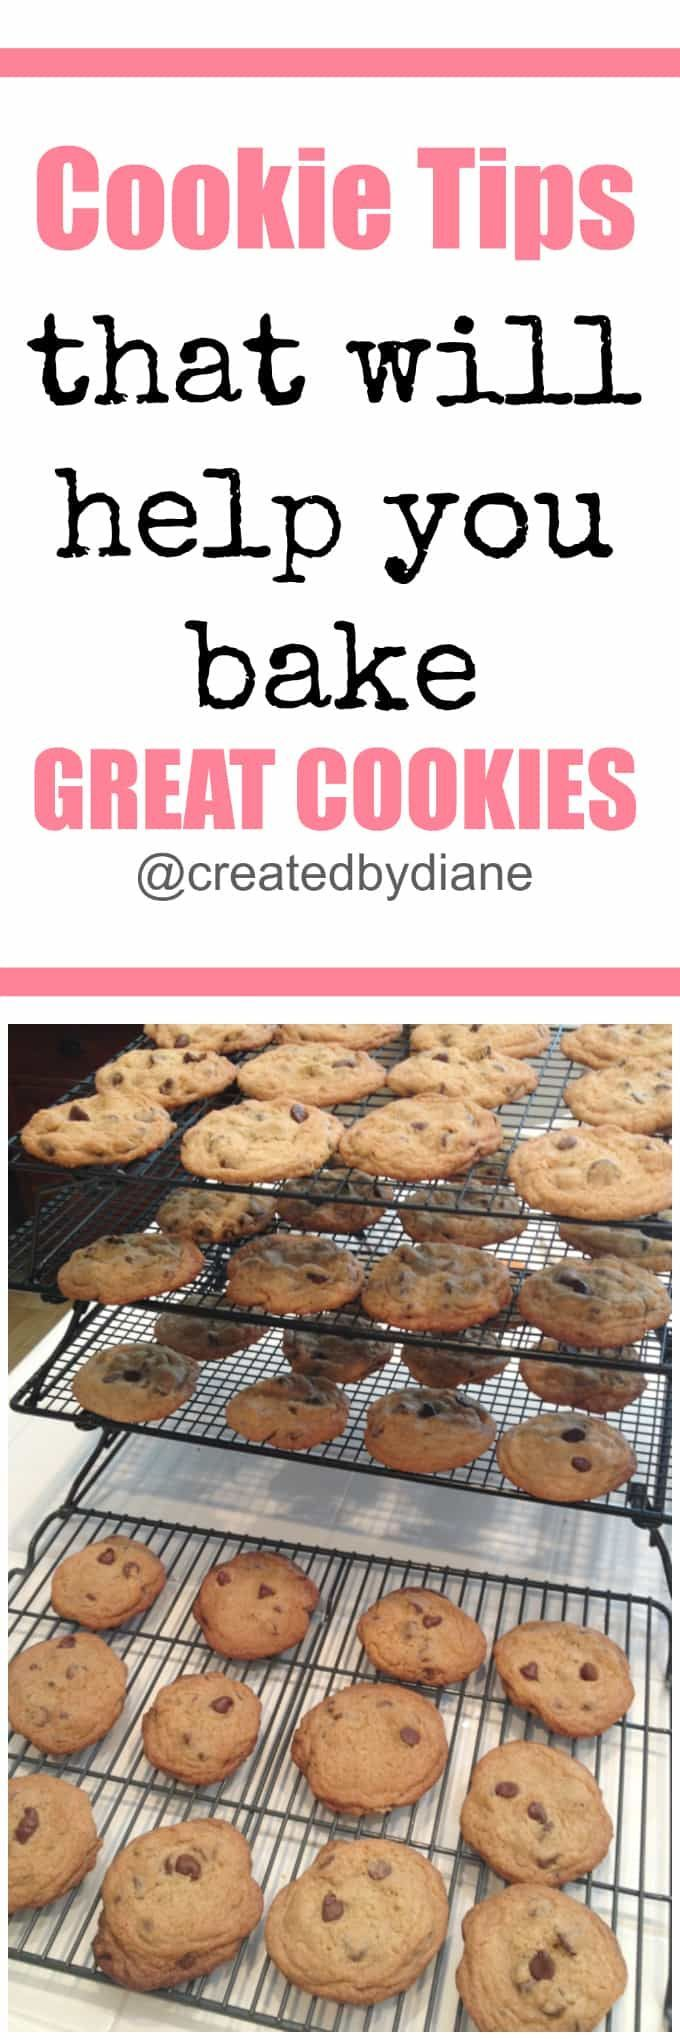 This is a MUST HAVE GUIDE TO COOKIE BAKING,cookie-tips-from-www-createdby-diane-com